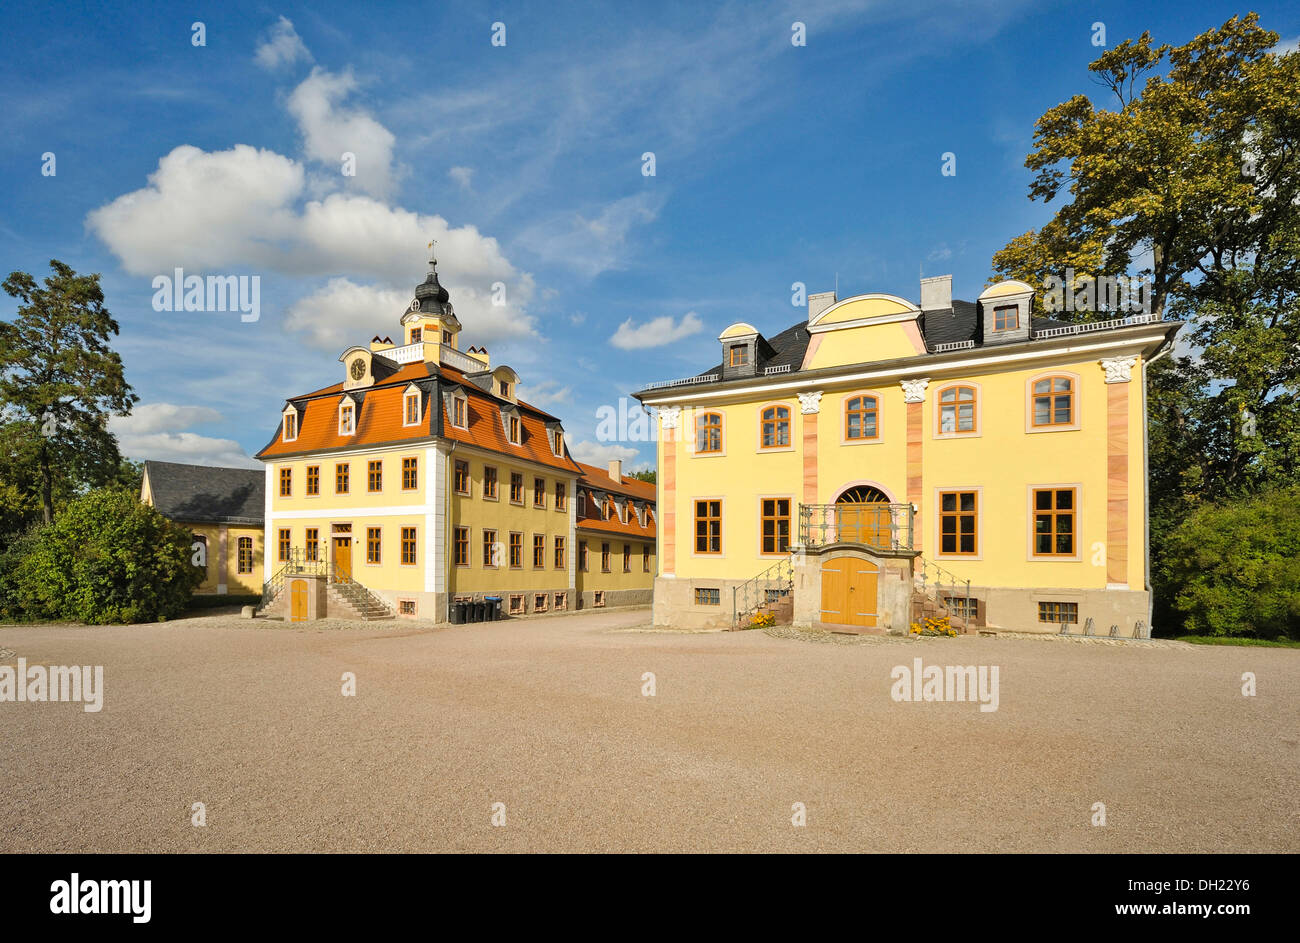 Kavaliershaus building, Schloss Belvedere palace, Weimar, Thuringia Stock Photo